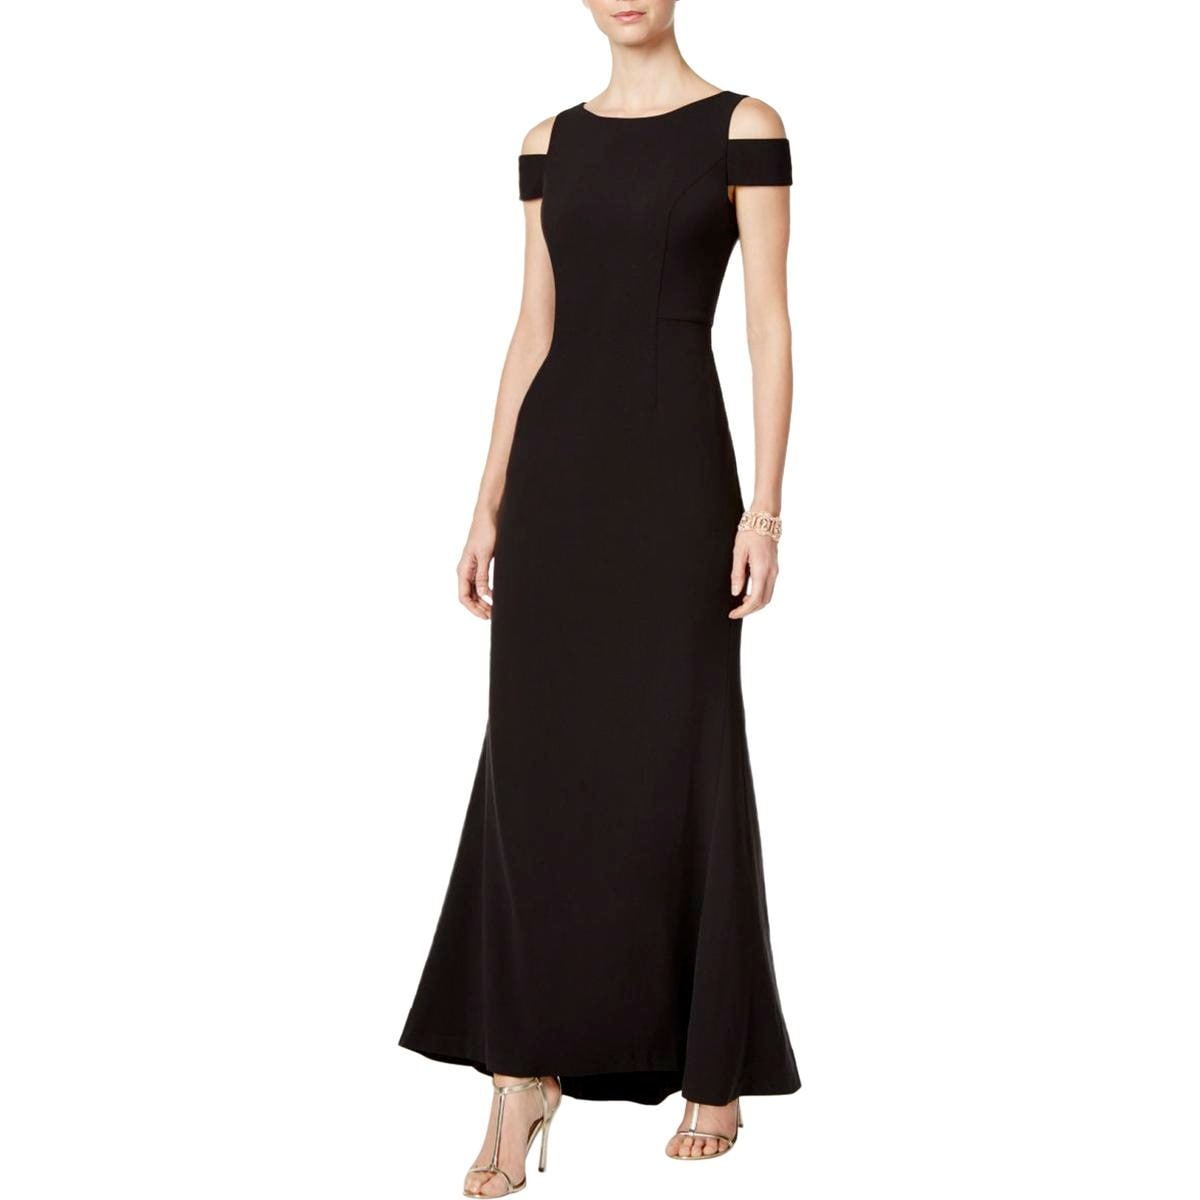 Vince Camuto Dresses | Find Great Women\'s Clothing Deals Shopping at ...